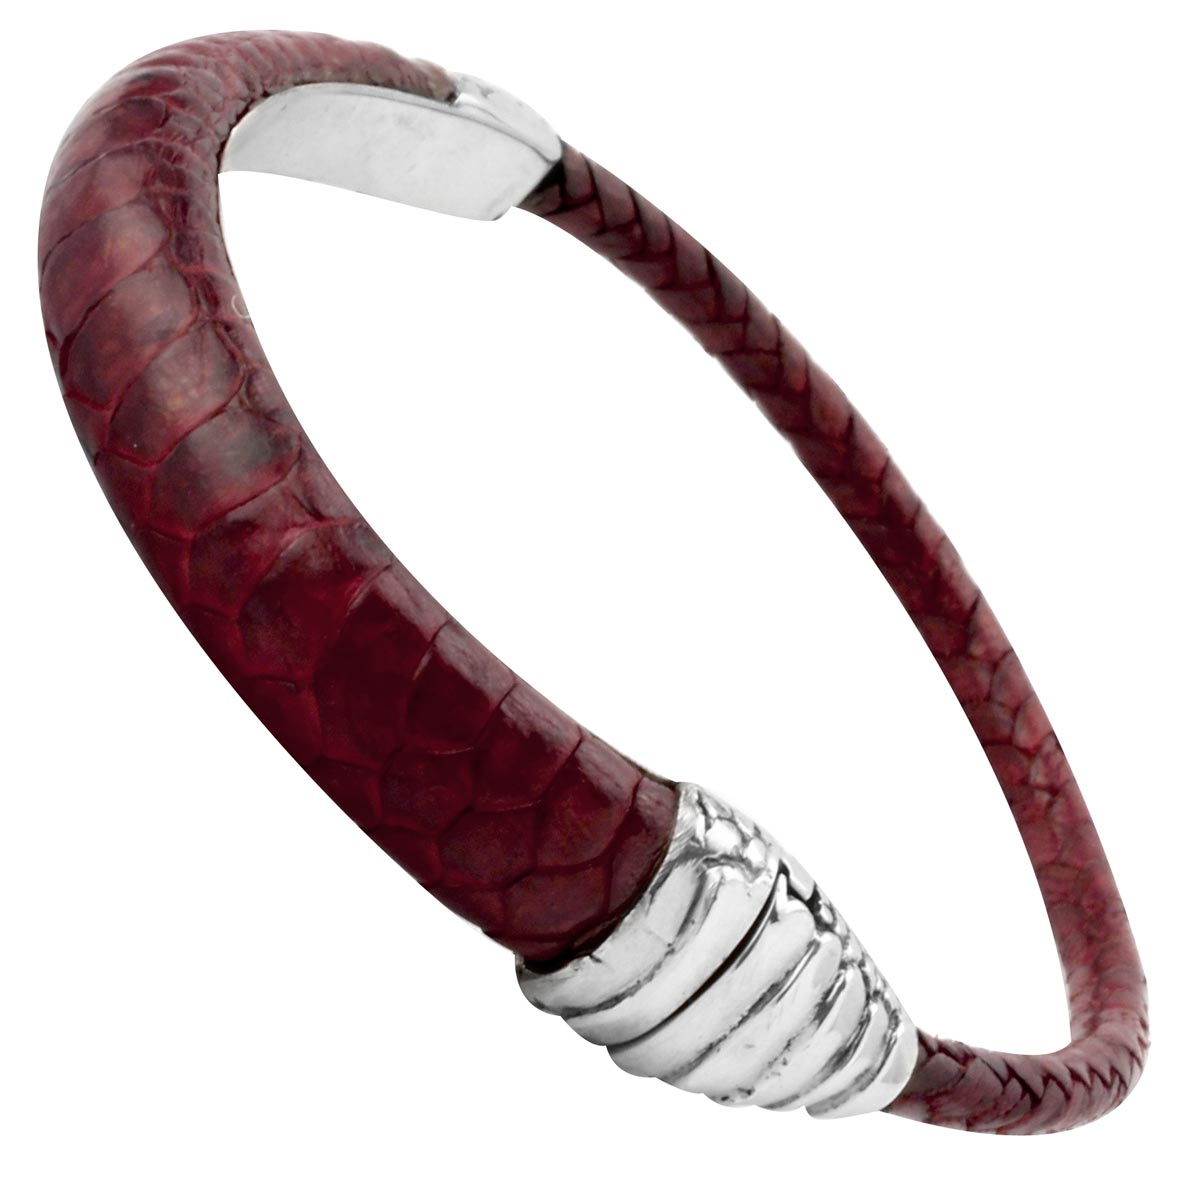 342816-Red Rooster and Leather Bracelet - ONLY 2 LEFT!